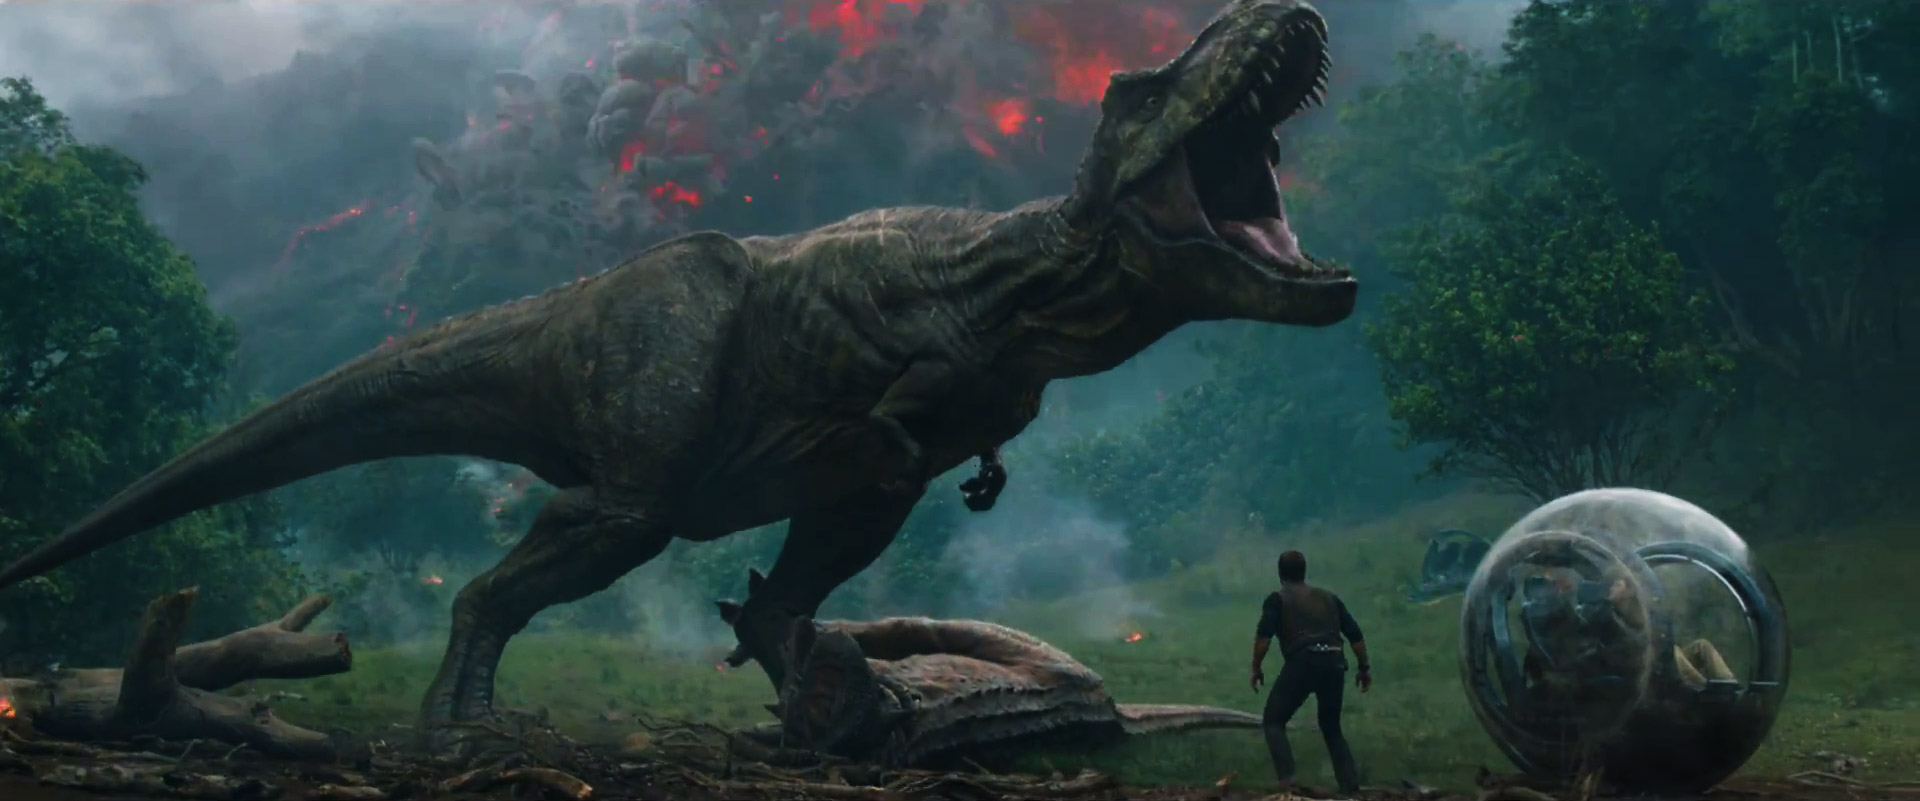 Jurassic World: Fallen Kingdom Final Trailer